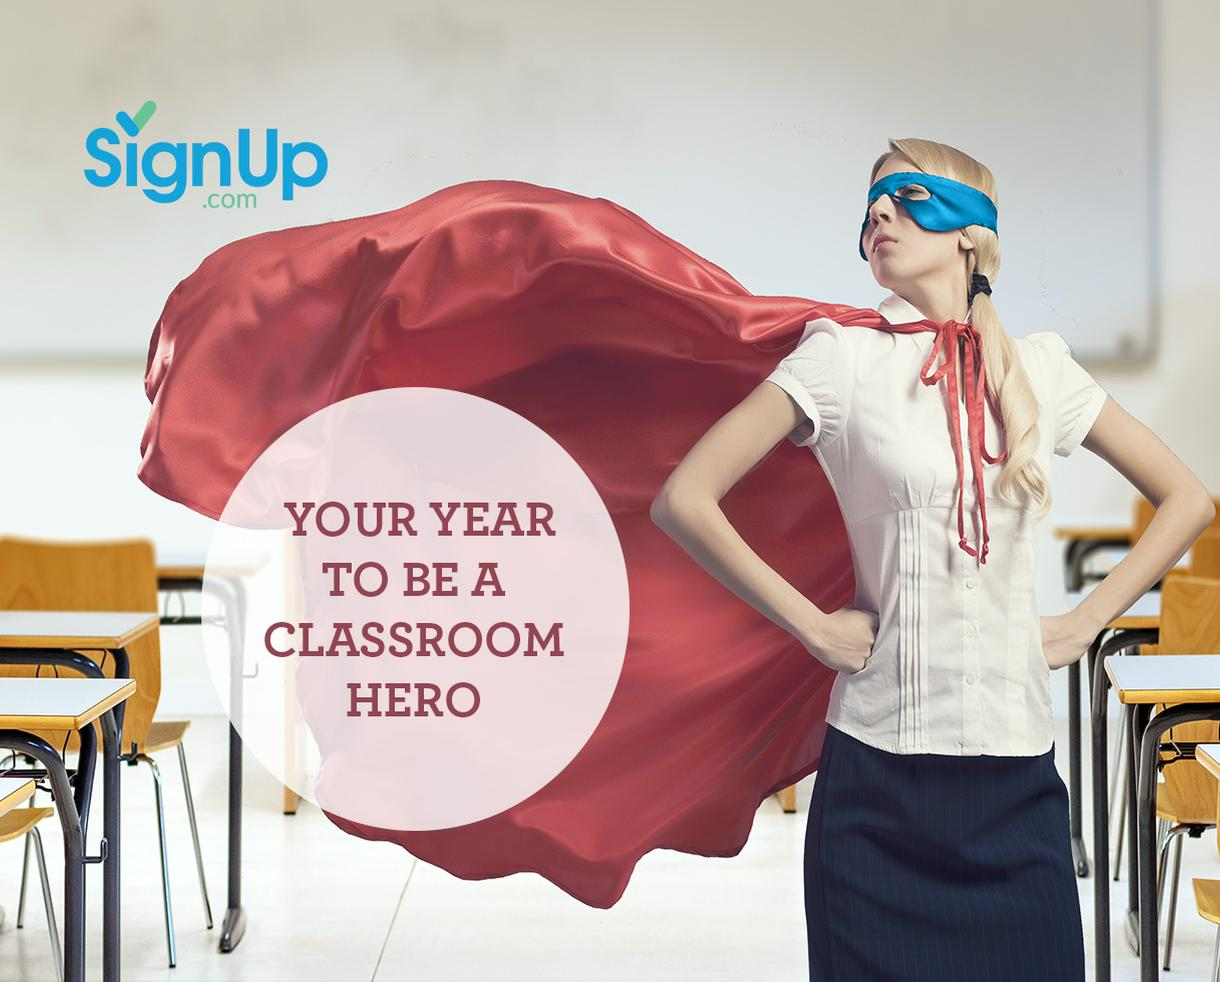 FREE SignUps & Scheduling with SignUp.com